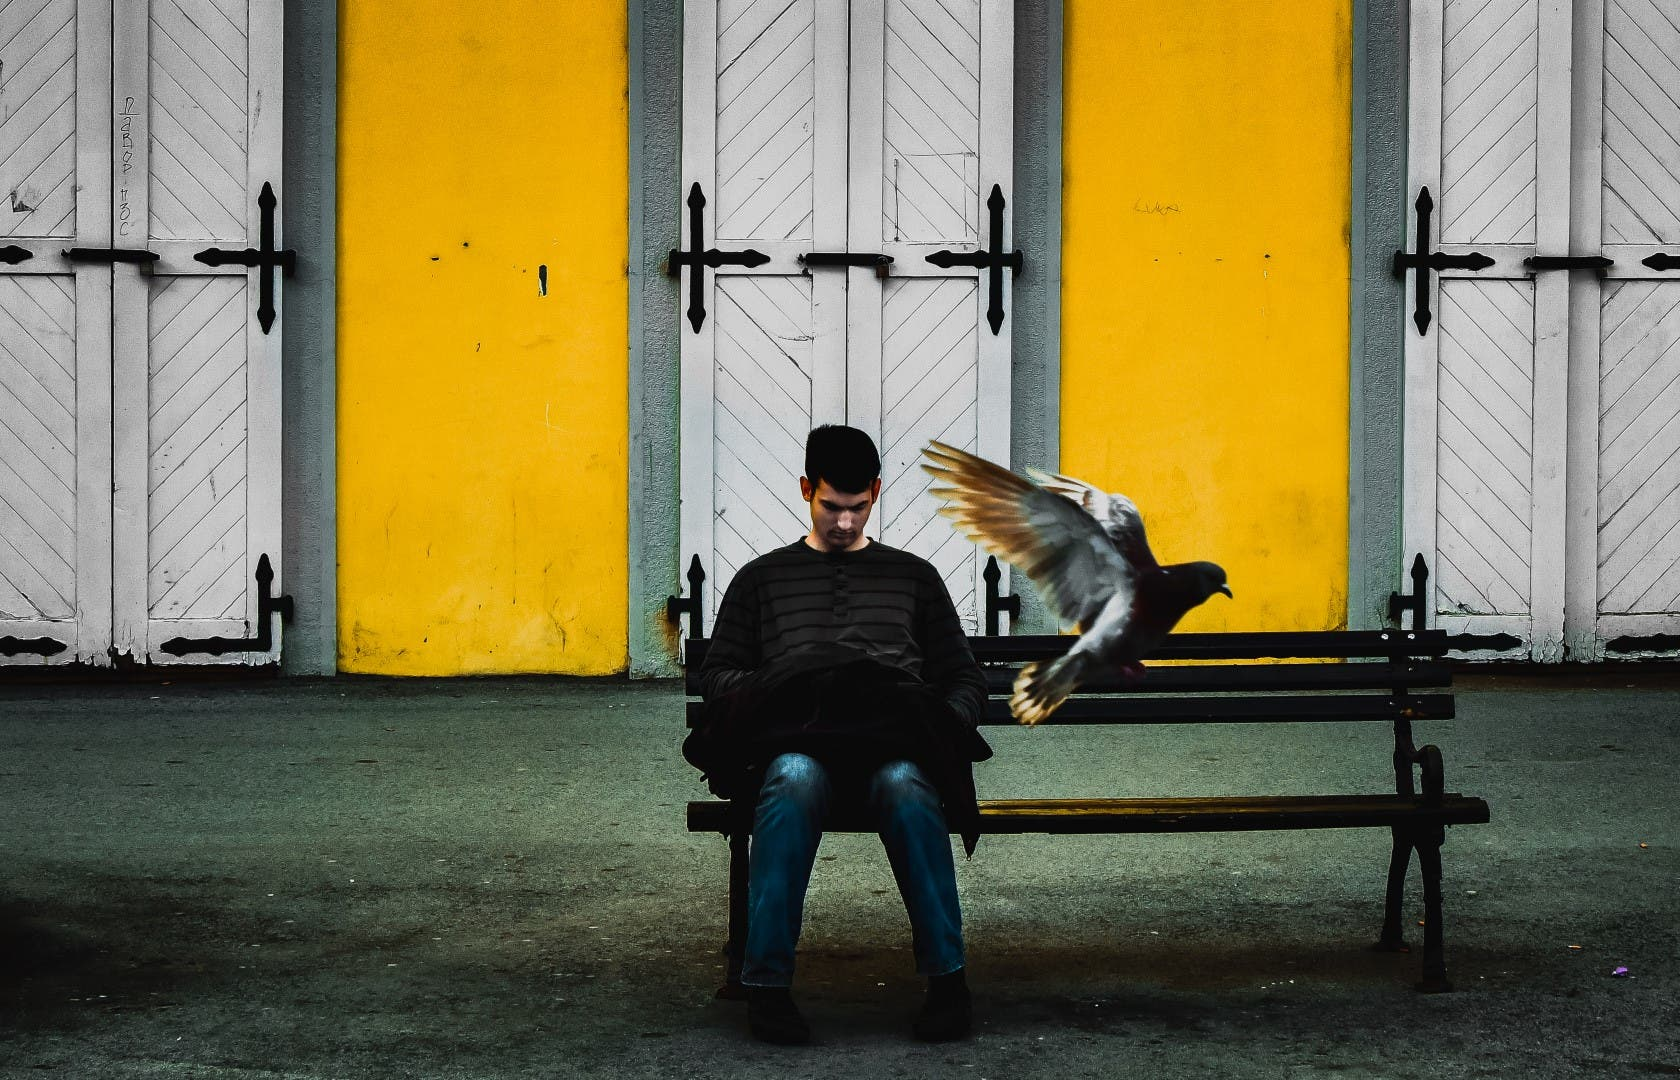 Zlatko Vickovic: On the Specific Use of Color in a Photo